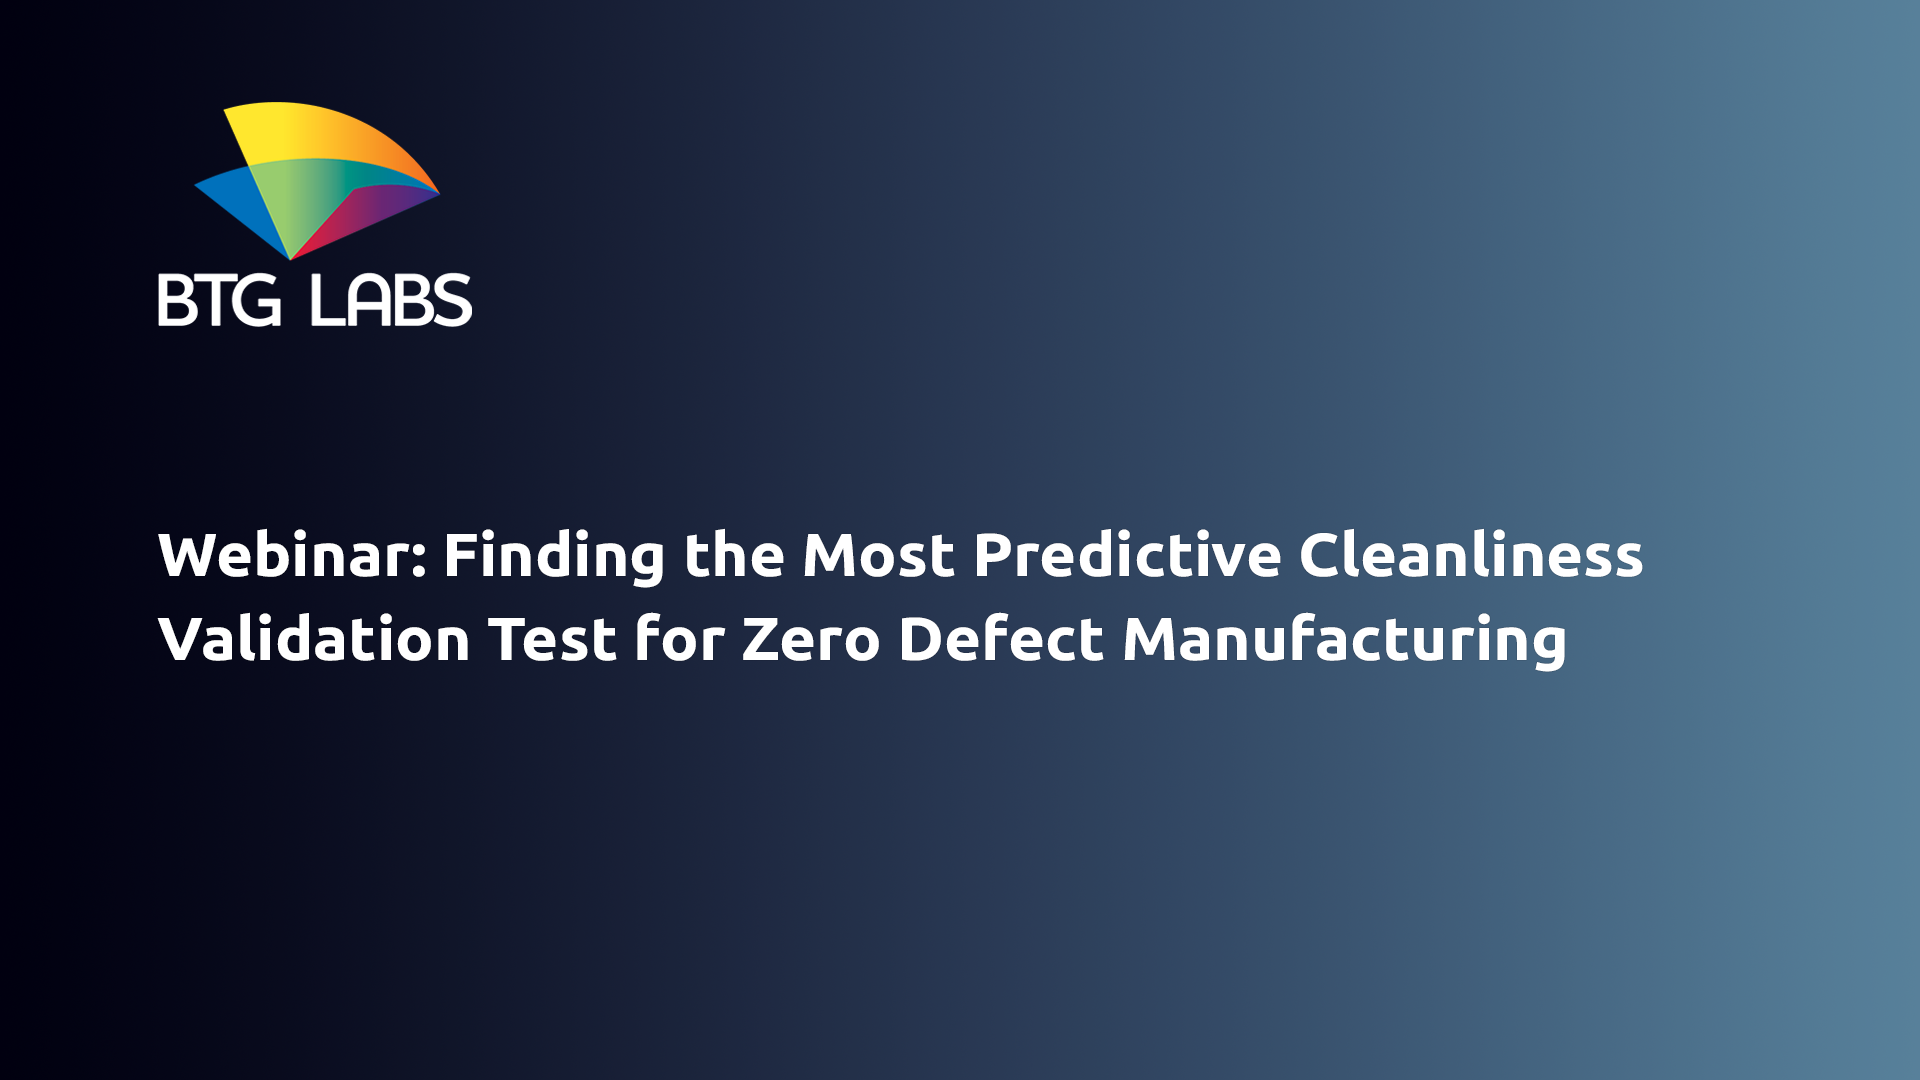 finding-the-most-predictive-cleanliness-validation-test-for-zero-defect-manufacturing-webinar